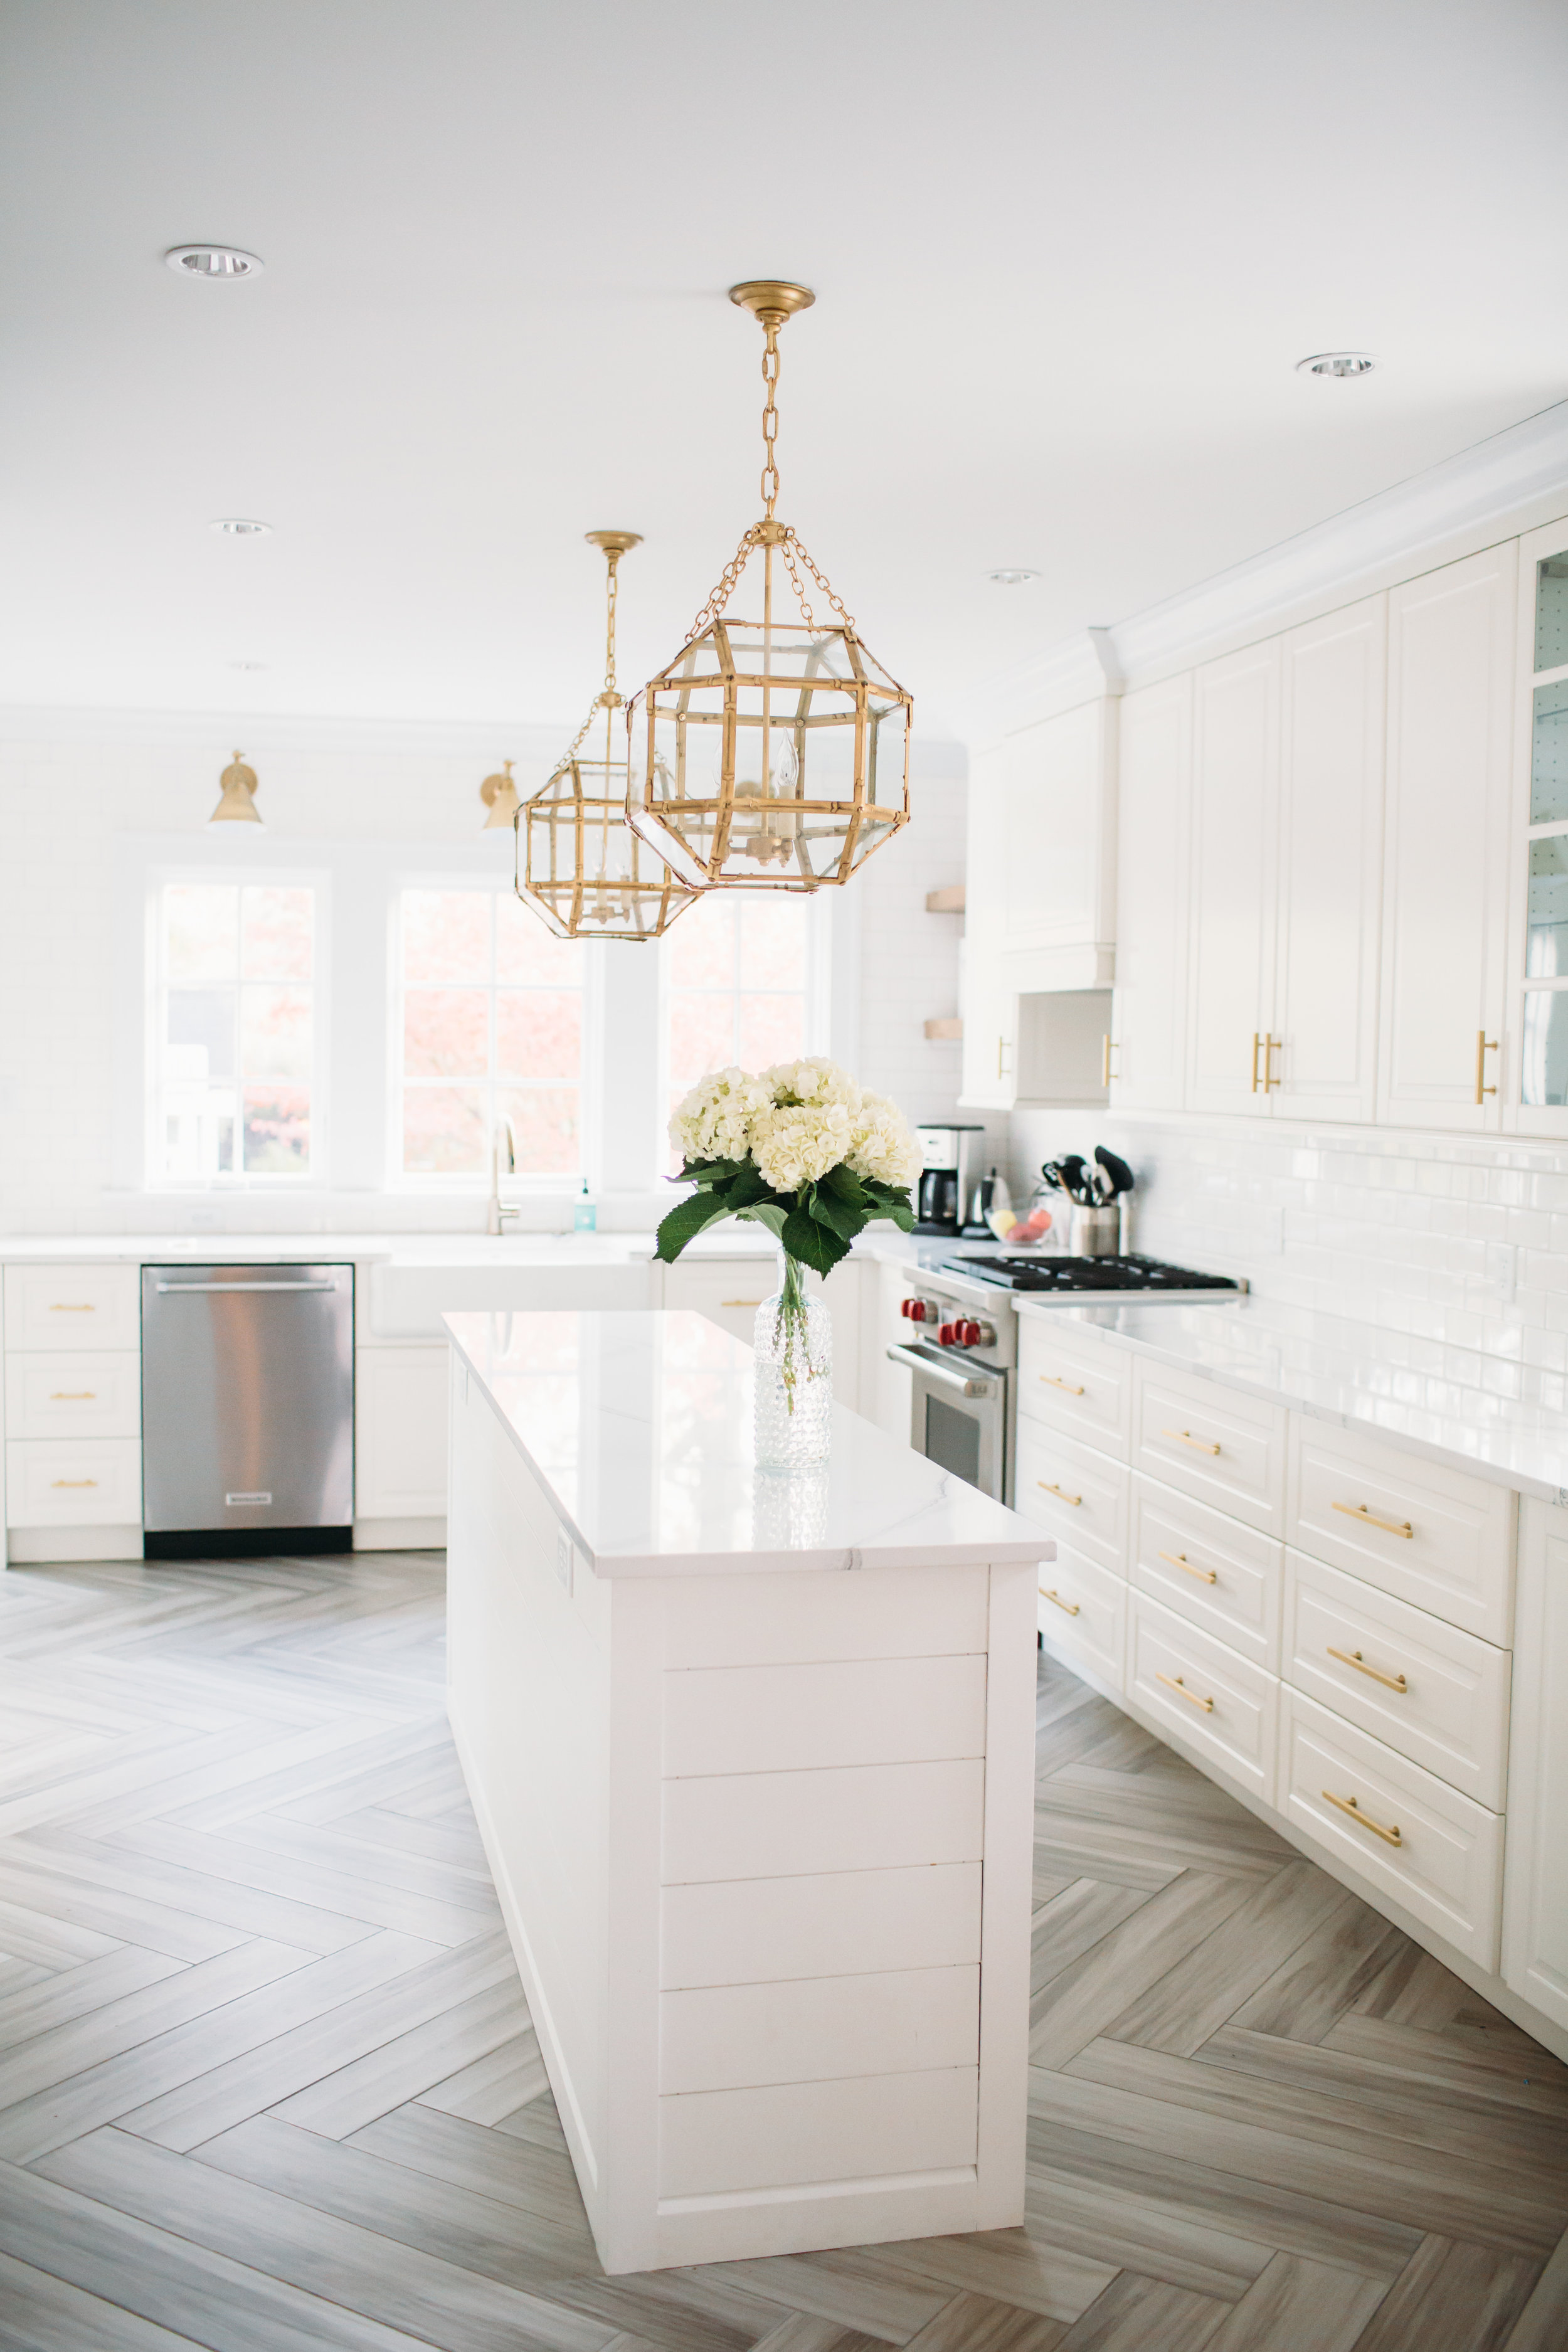 Kitchen Remodel Goals, St Louis lifestyle photographer